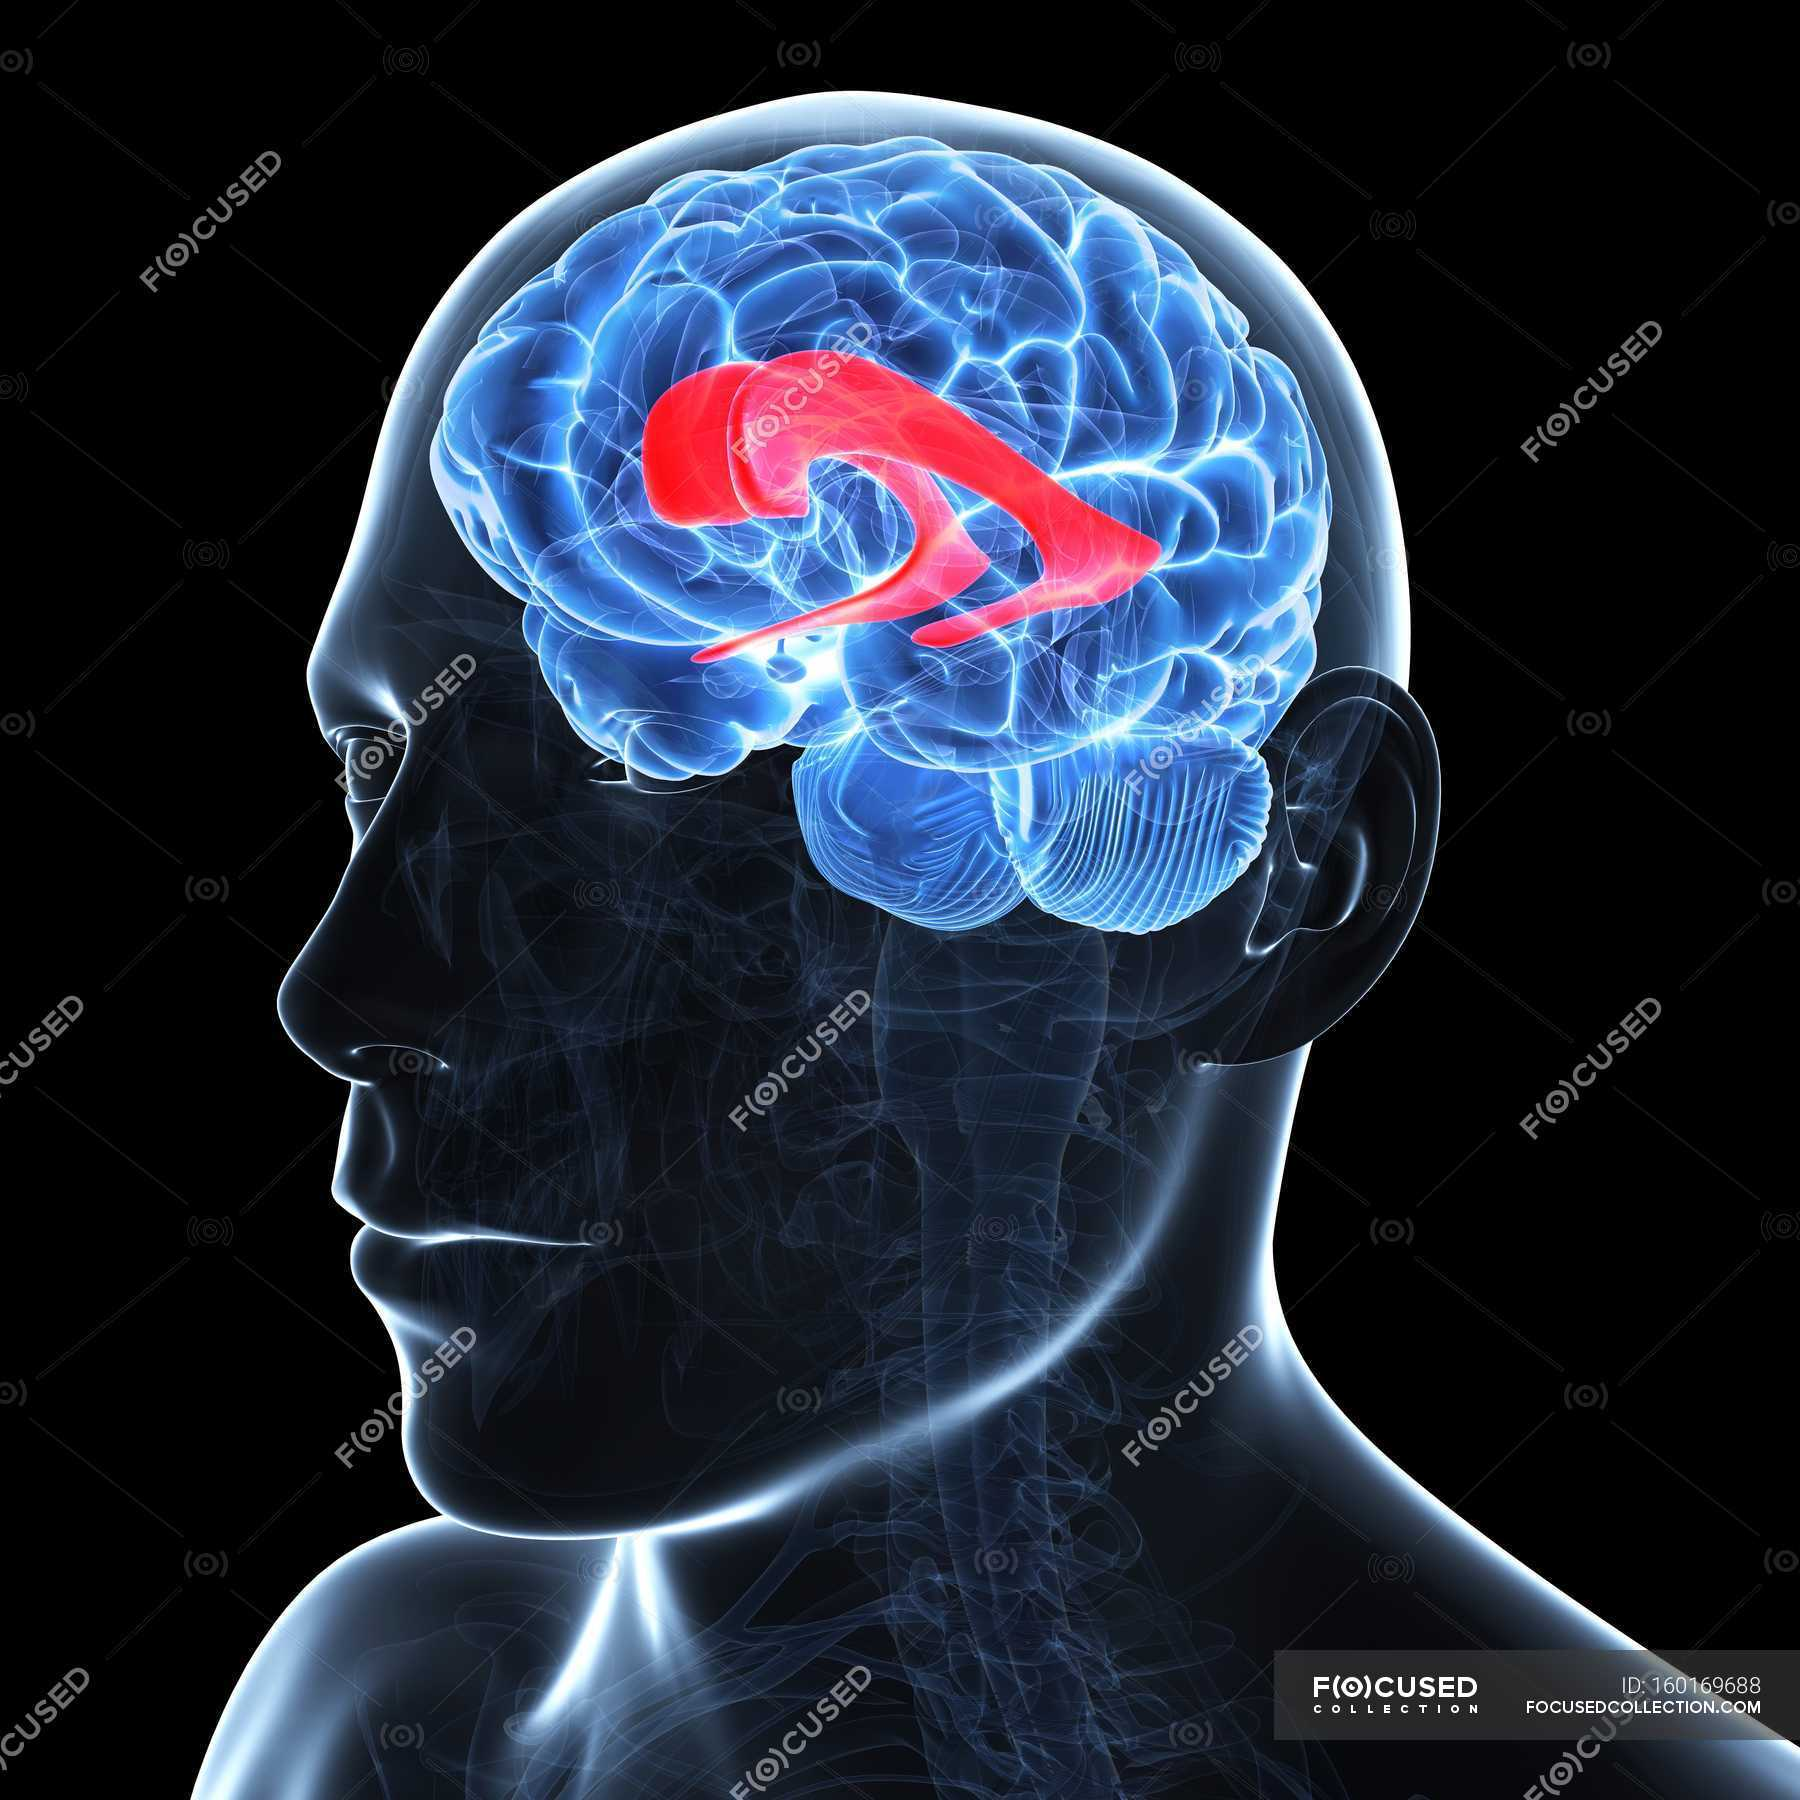 Brain showing lateral ventricle — Stock Photo | #160169688